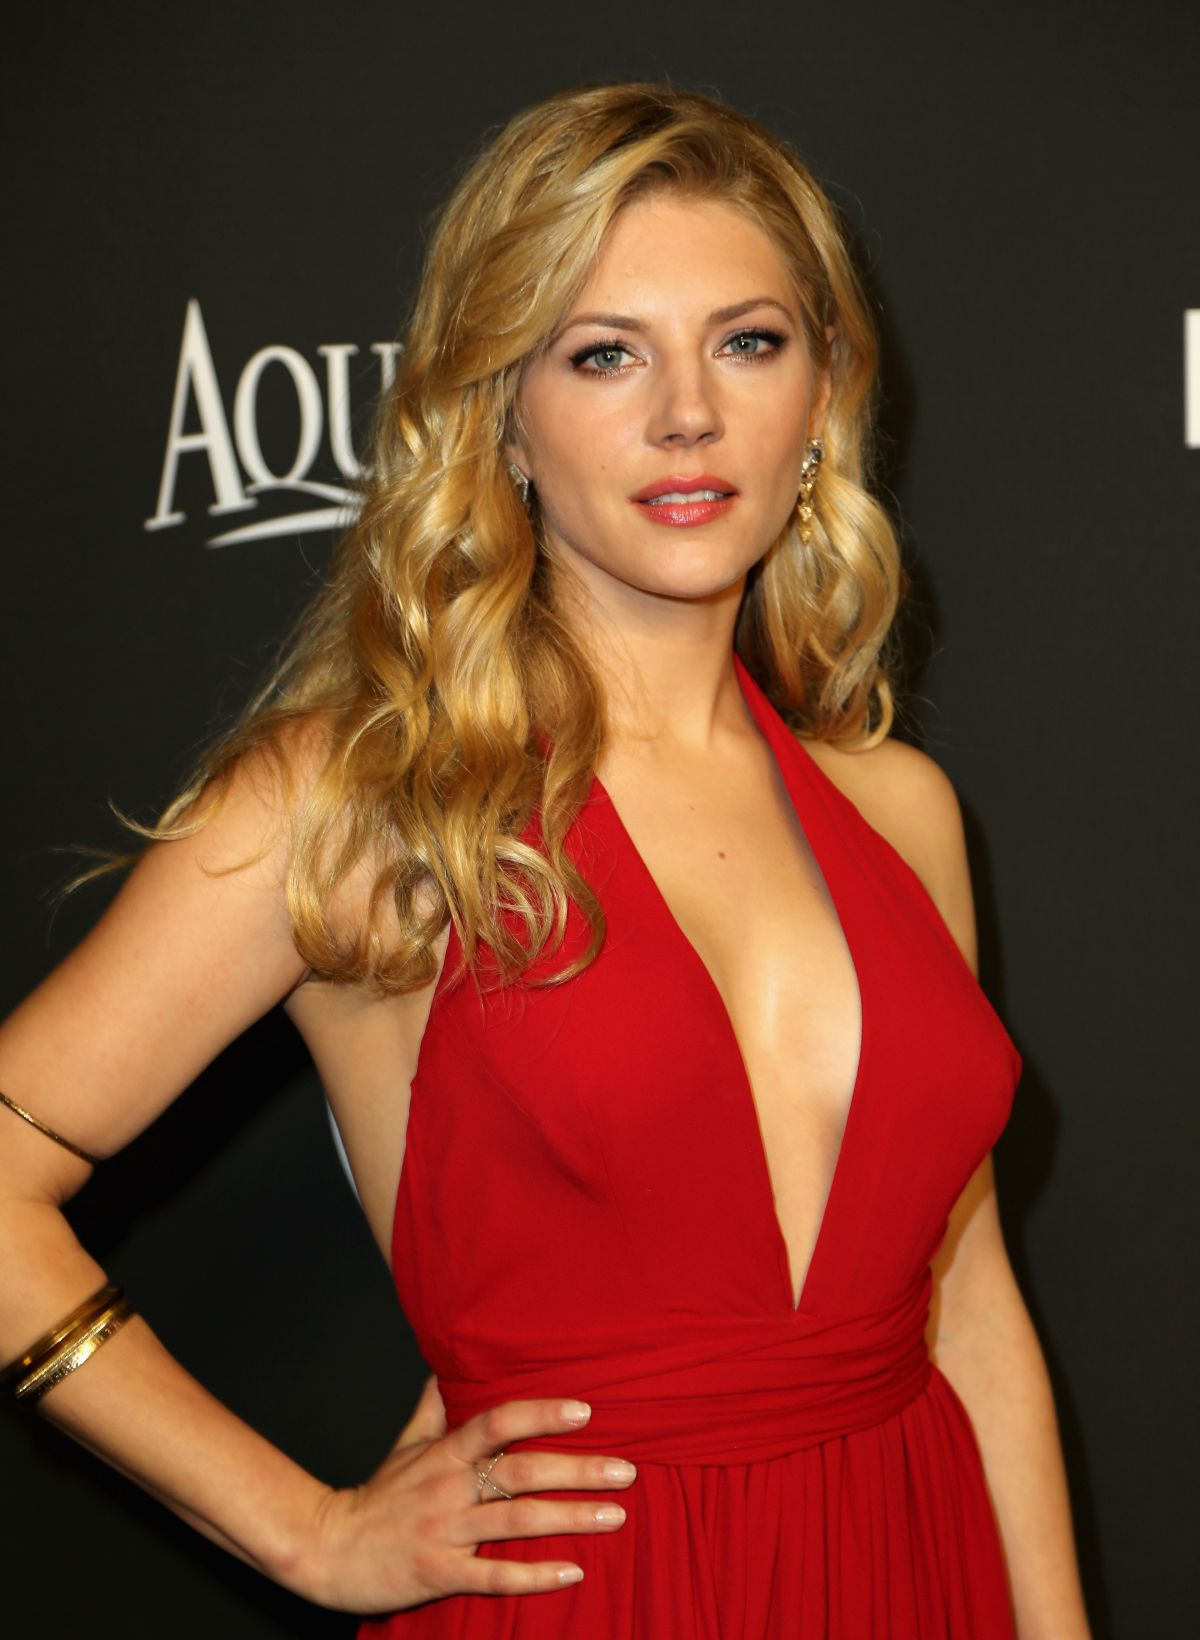 Katheryn Winnick earned a  million dollar salary, leaving the net worth at 1 million in 2017